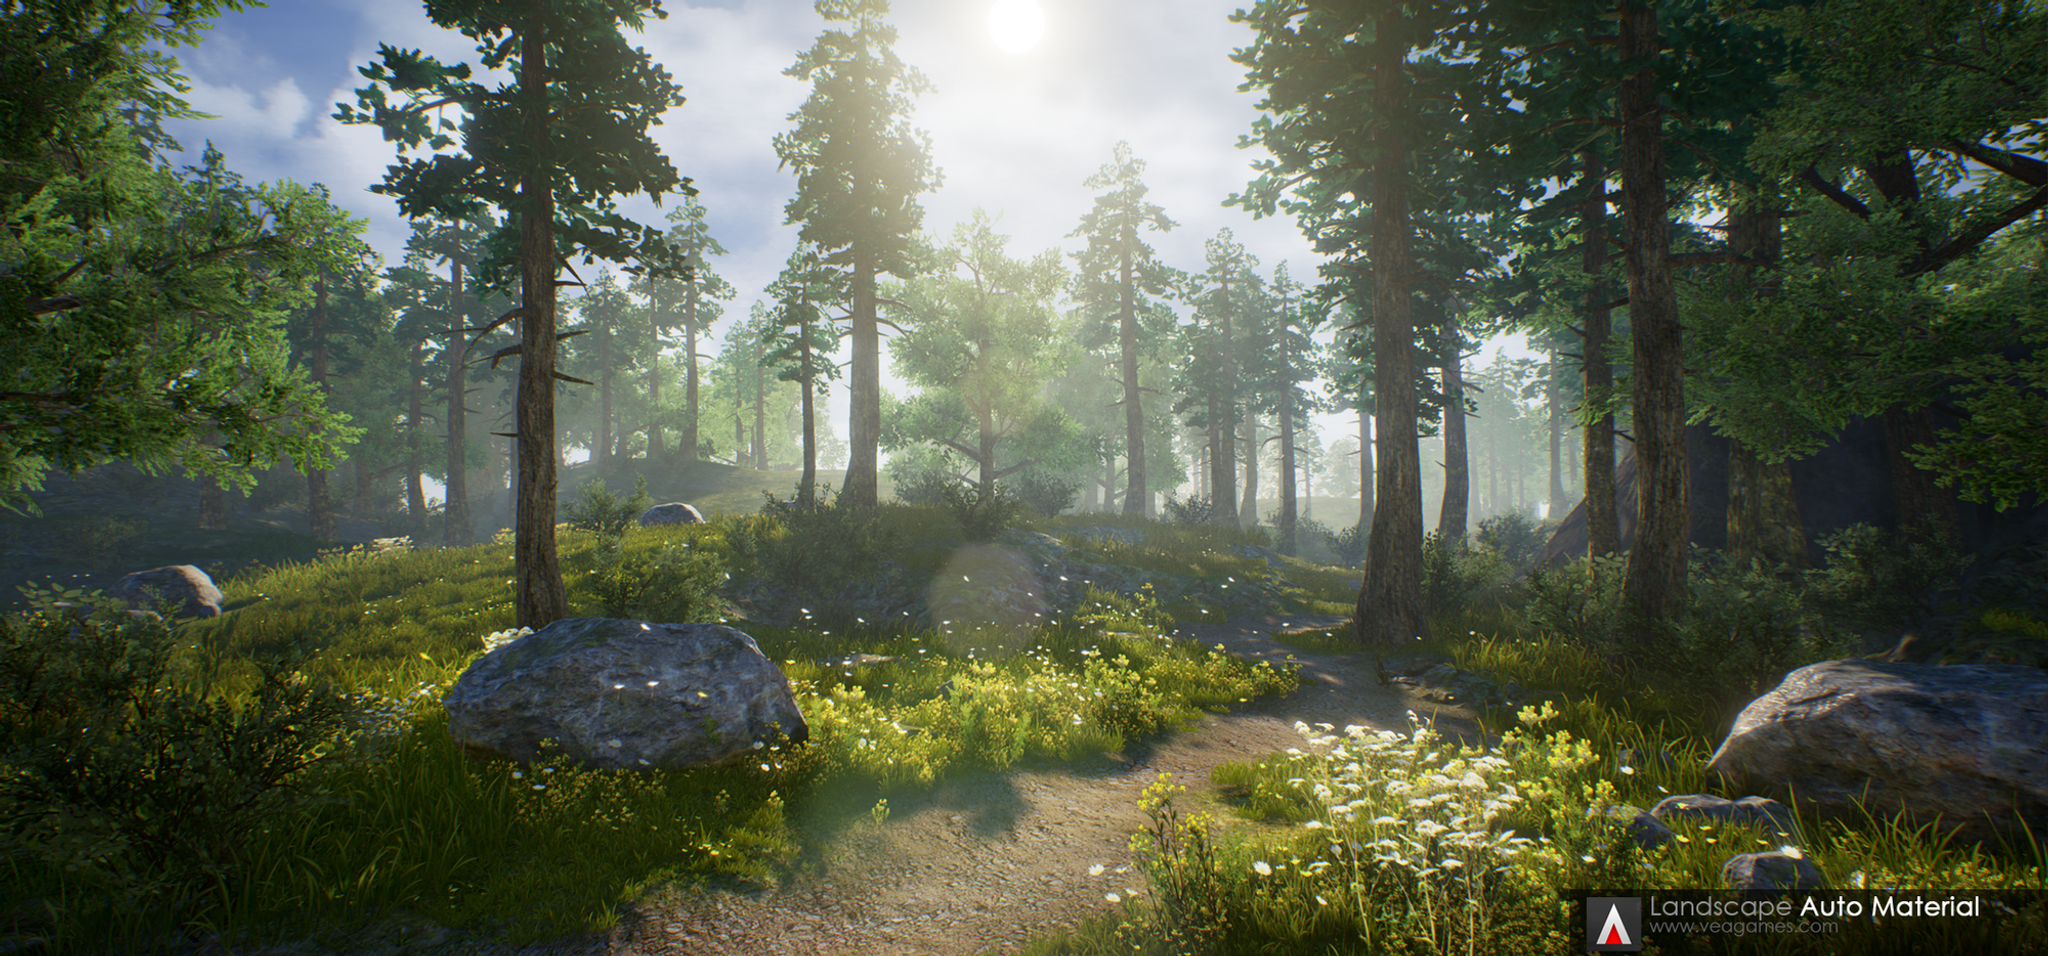 LAM UE4: How to Use | VEA GAMES